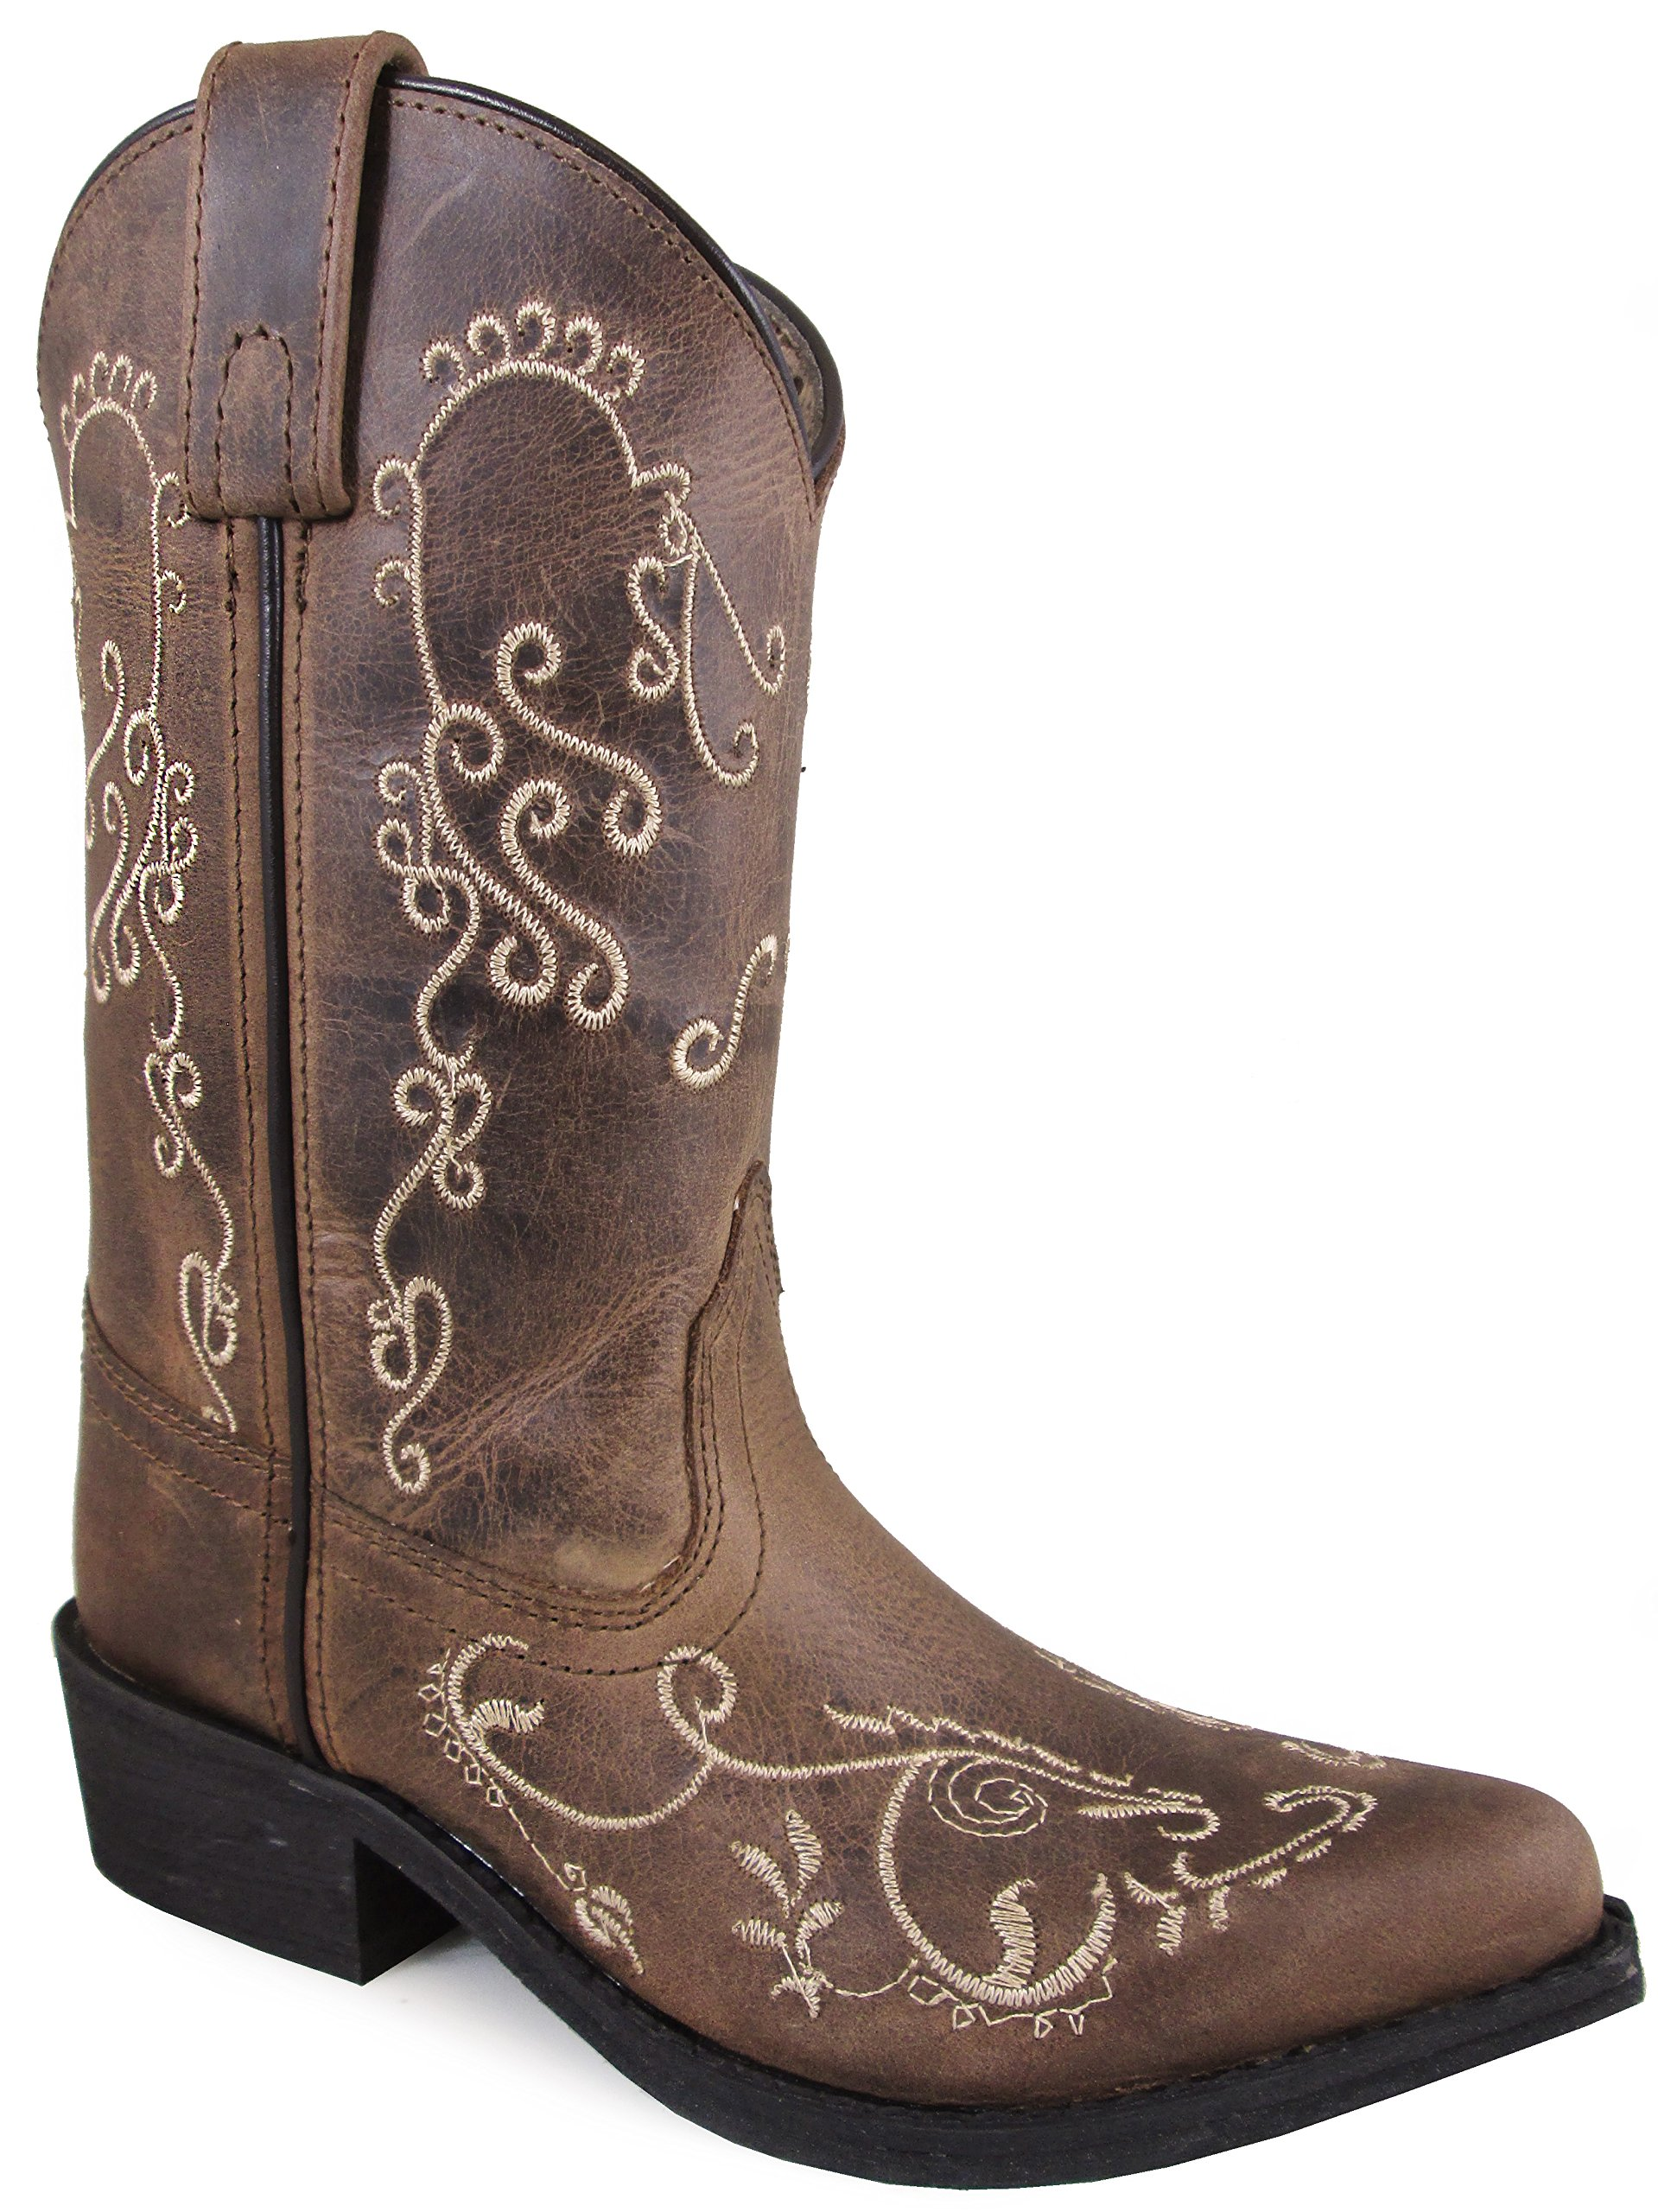 Smoky Mountain Children's Jolene Pull On Embroidered Snip Toe Brown Waxed Distress Boots 13M